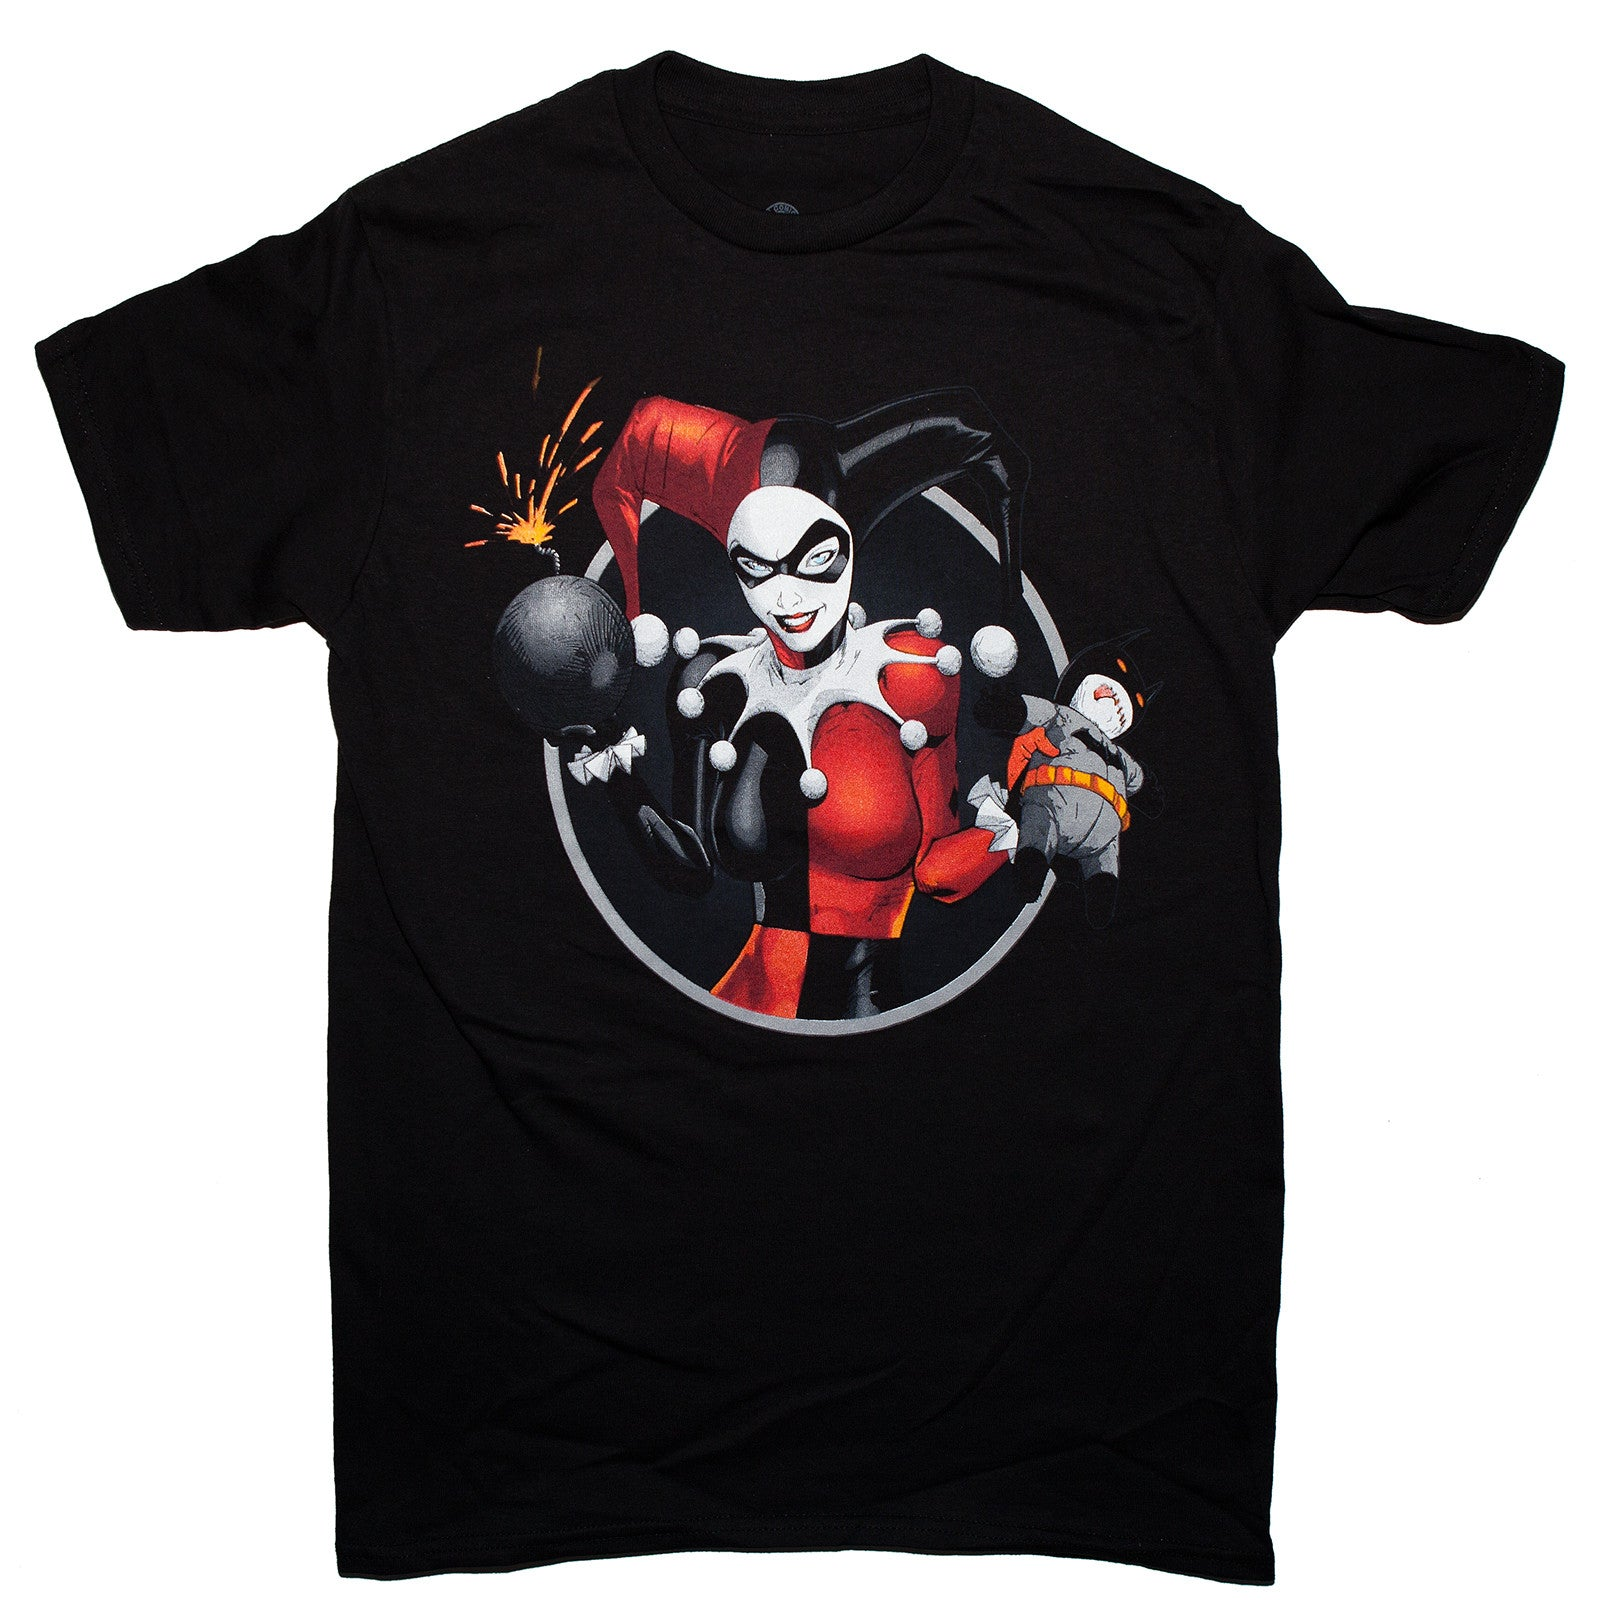 DC Comics Harley Quinn Bomb T-shirt Unisex Adult Sizes S-3XL